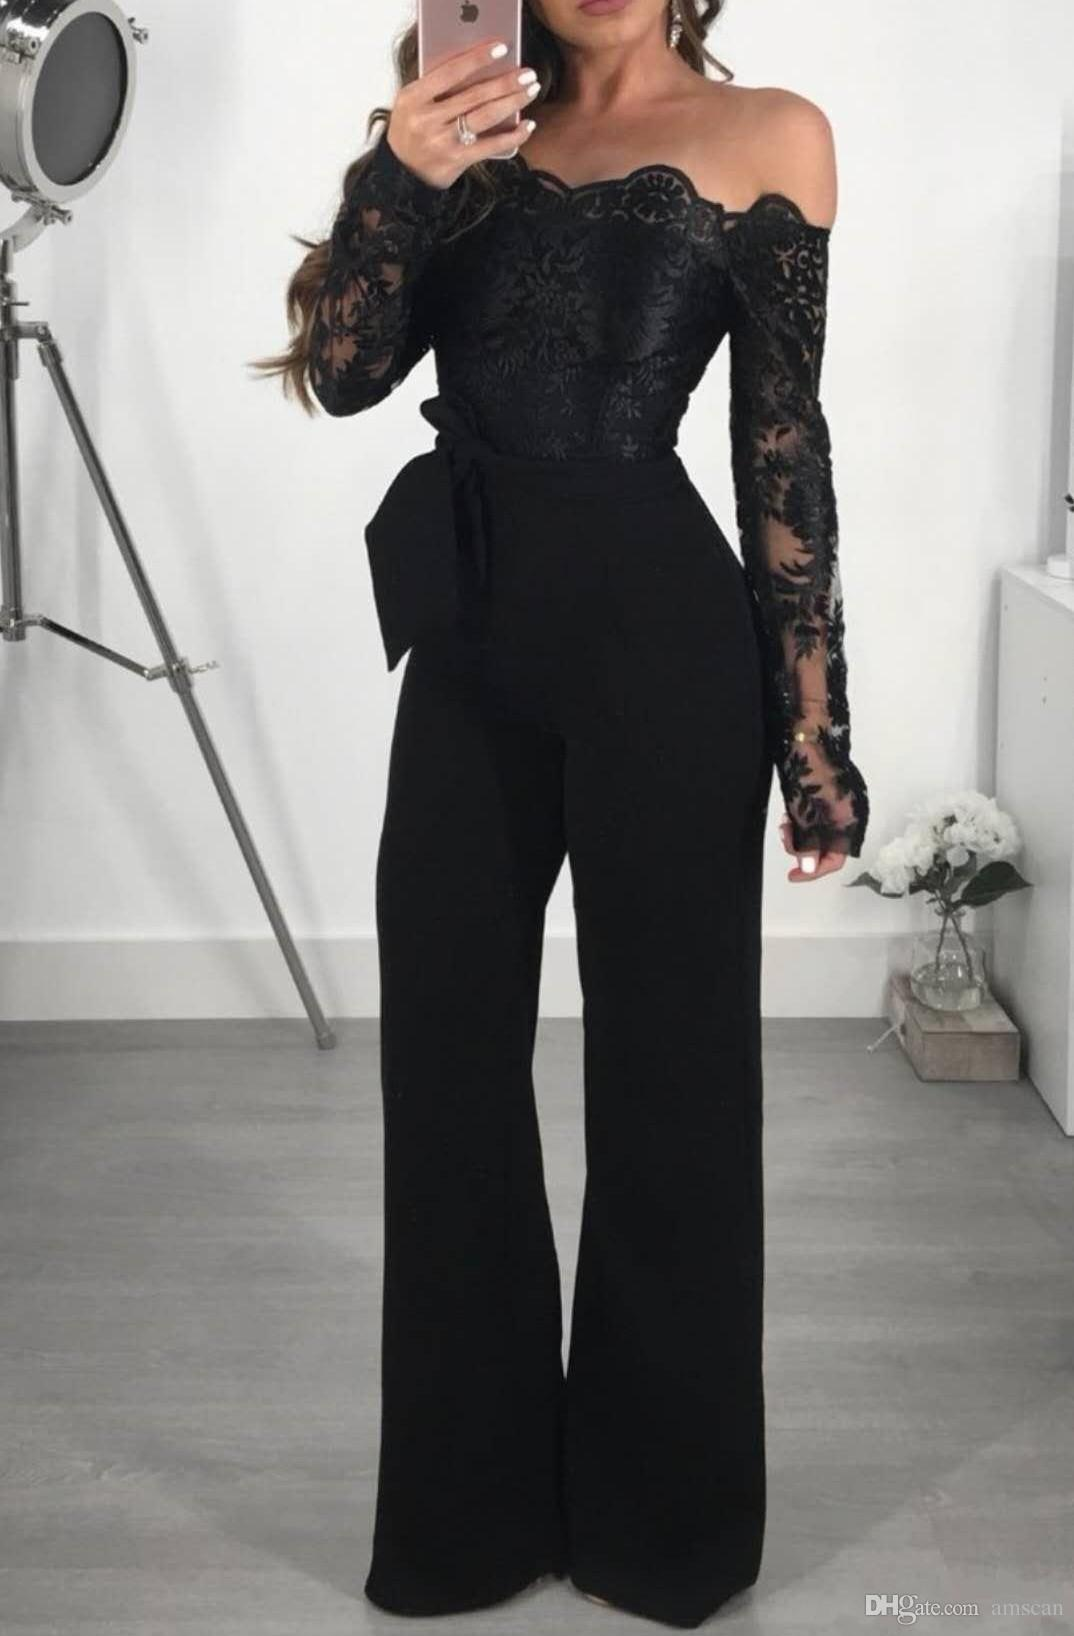 f77af5c5850 2019 Fashion Black Women Jumpsuits Off Shoulder Long Sleeves Special  Occasion Formal Dresses Custom Made Long Evening Prom Party Gowns Cheap  Design A Prom ...